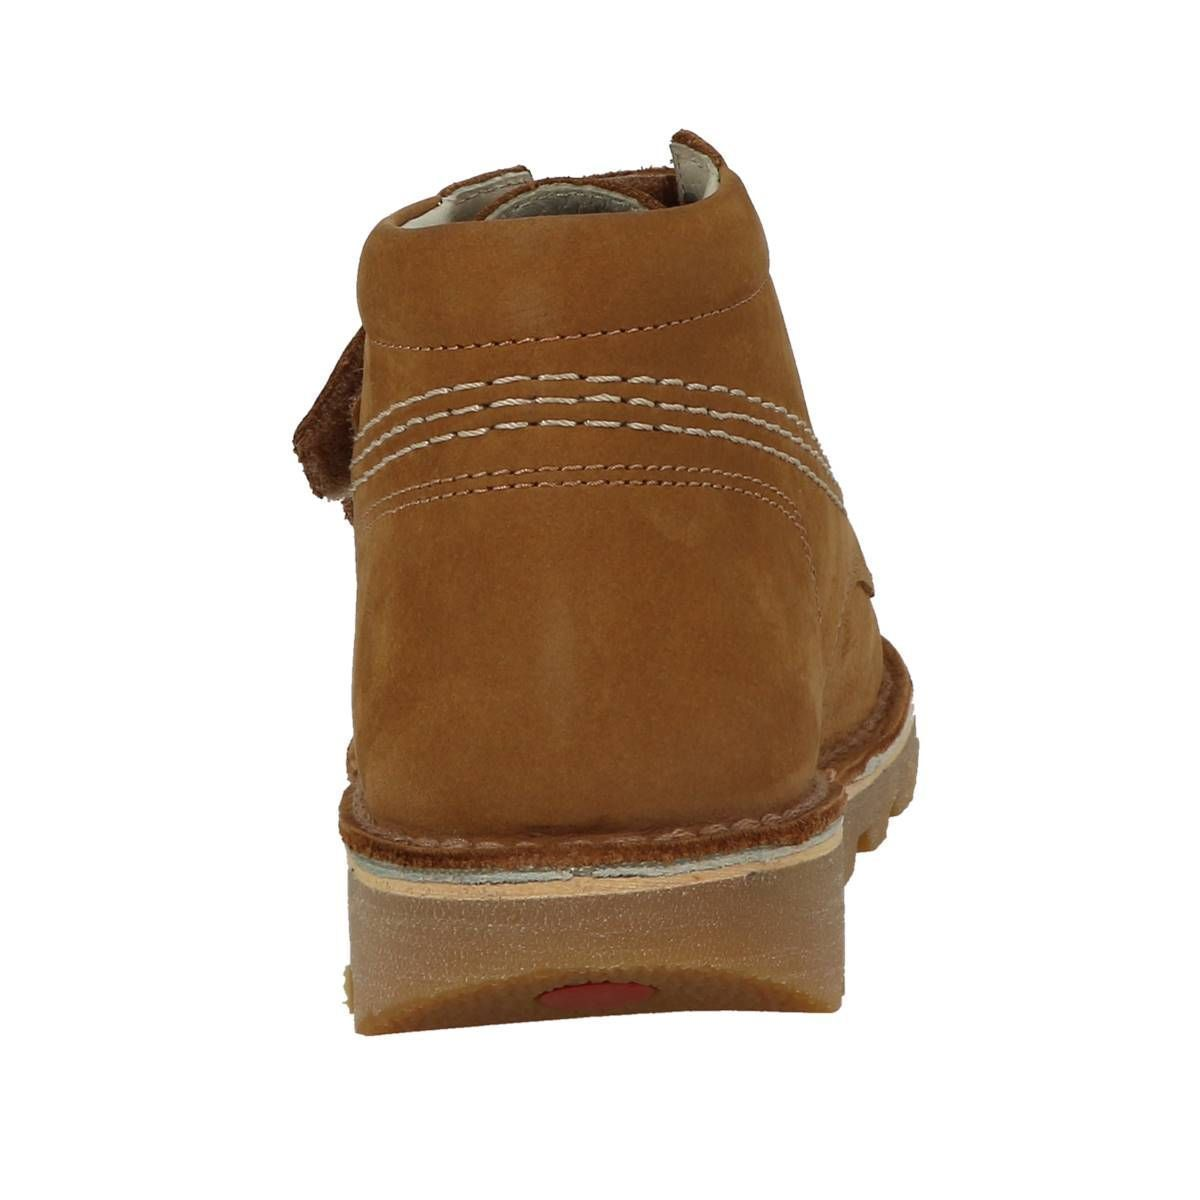 Kickers fille neovelcro camel1157801_5